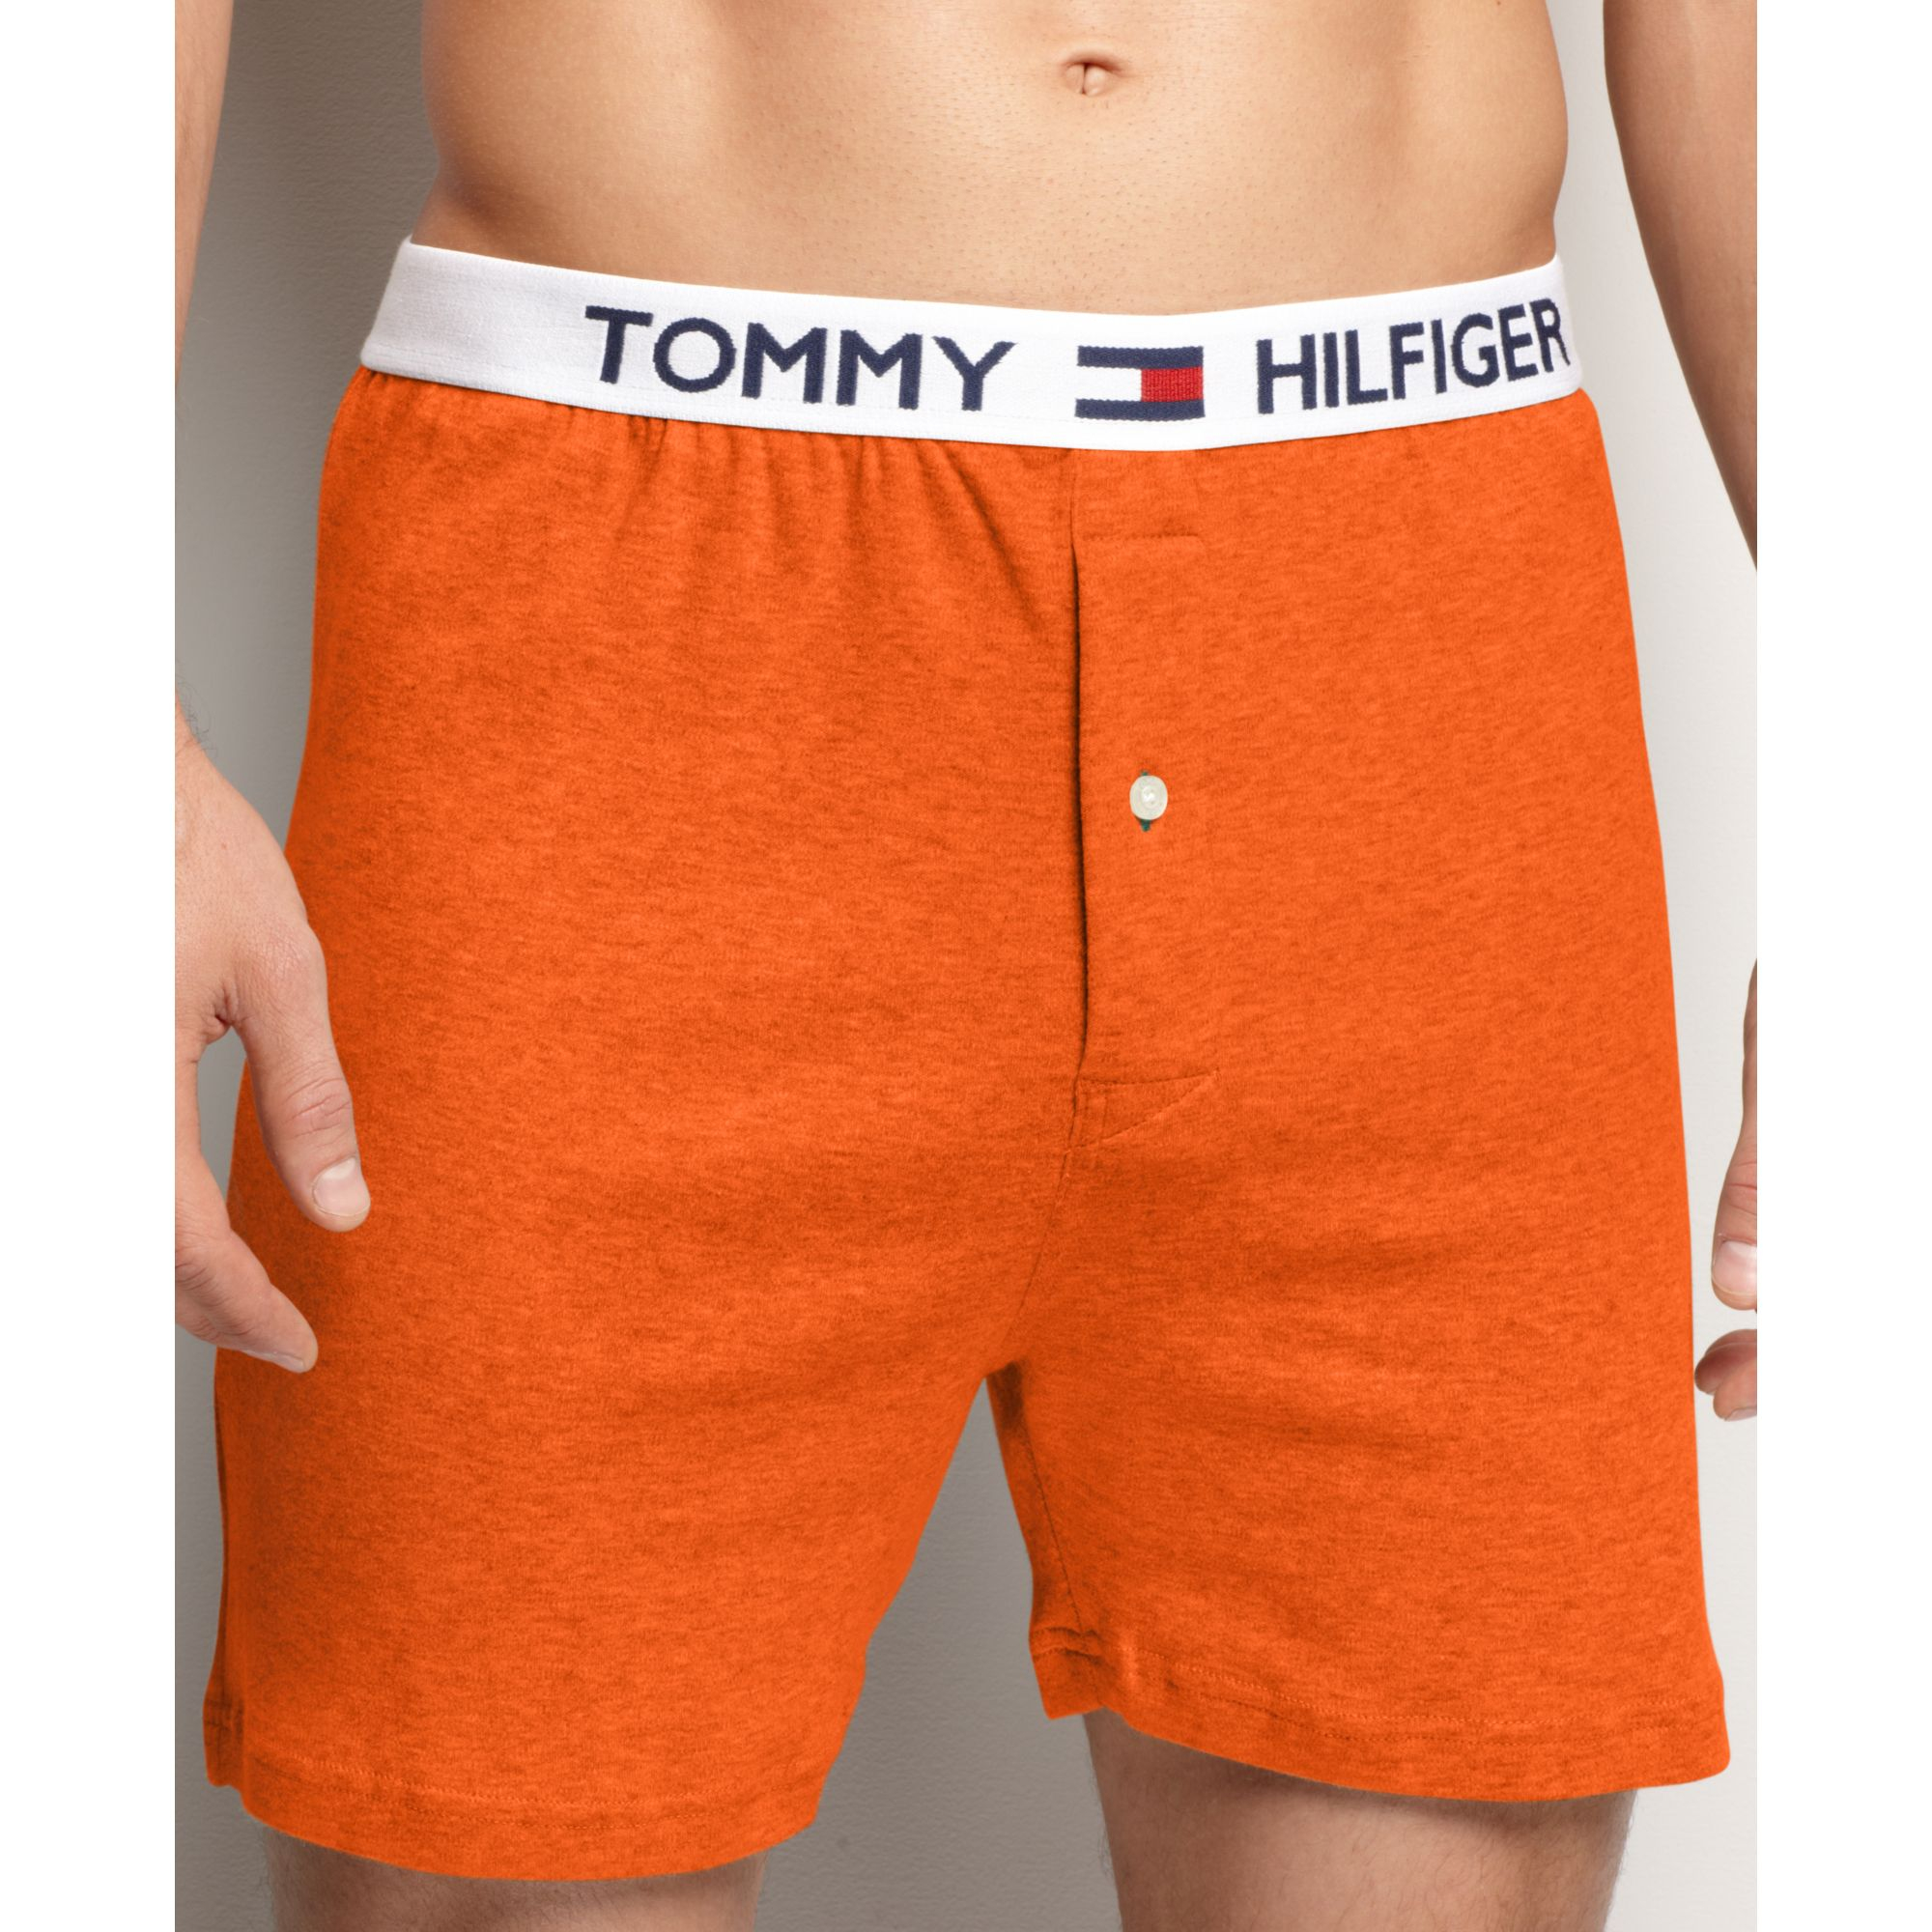 4f51a1c62e17 Tommy Hilfiger Athletic Knit Boxer in Orange for Men - Lyst